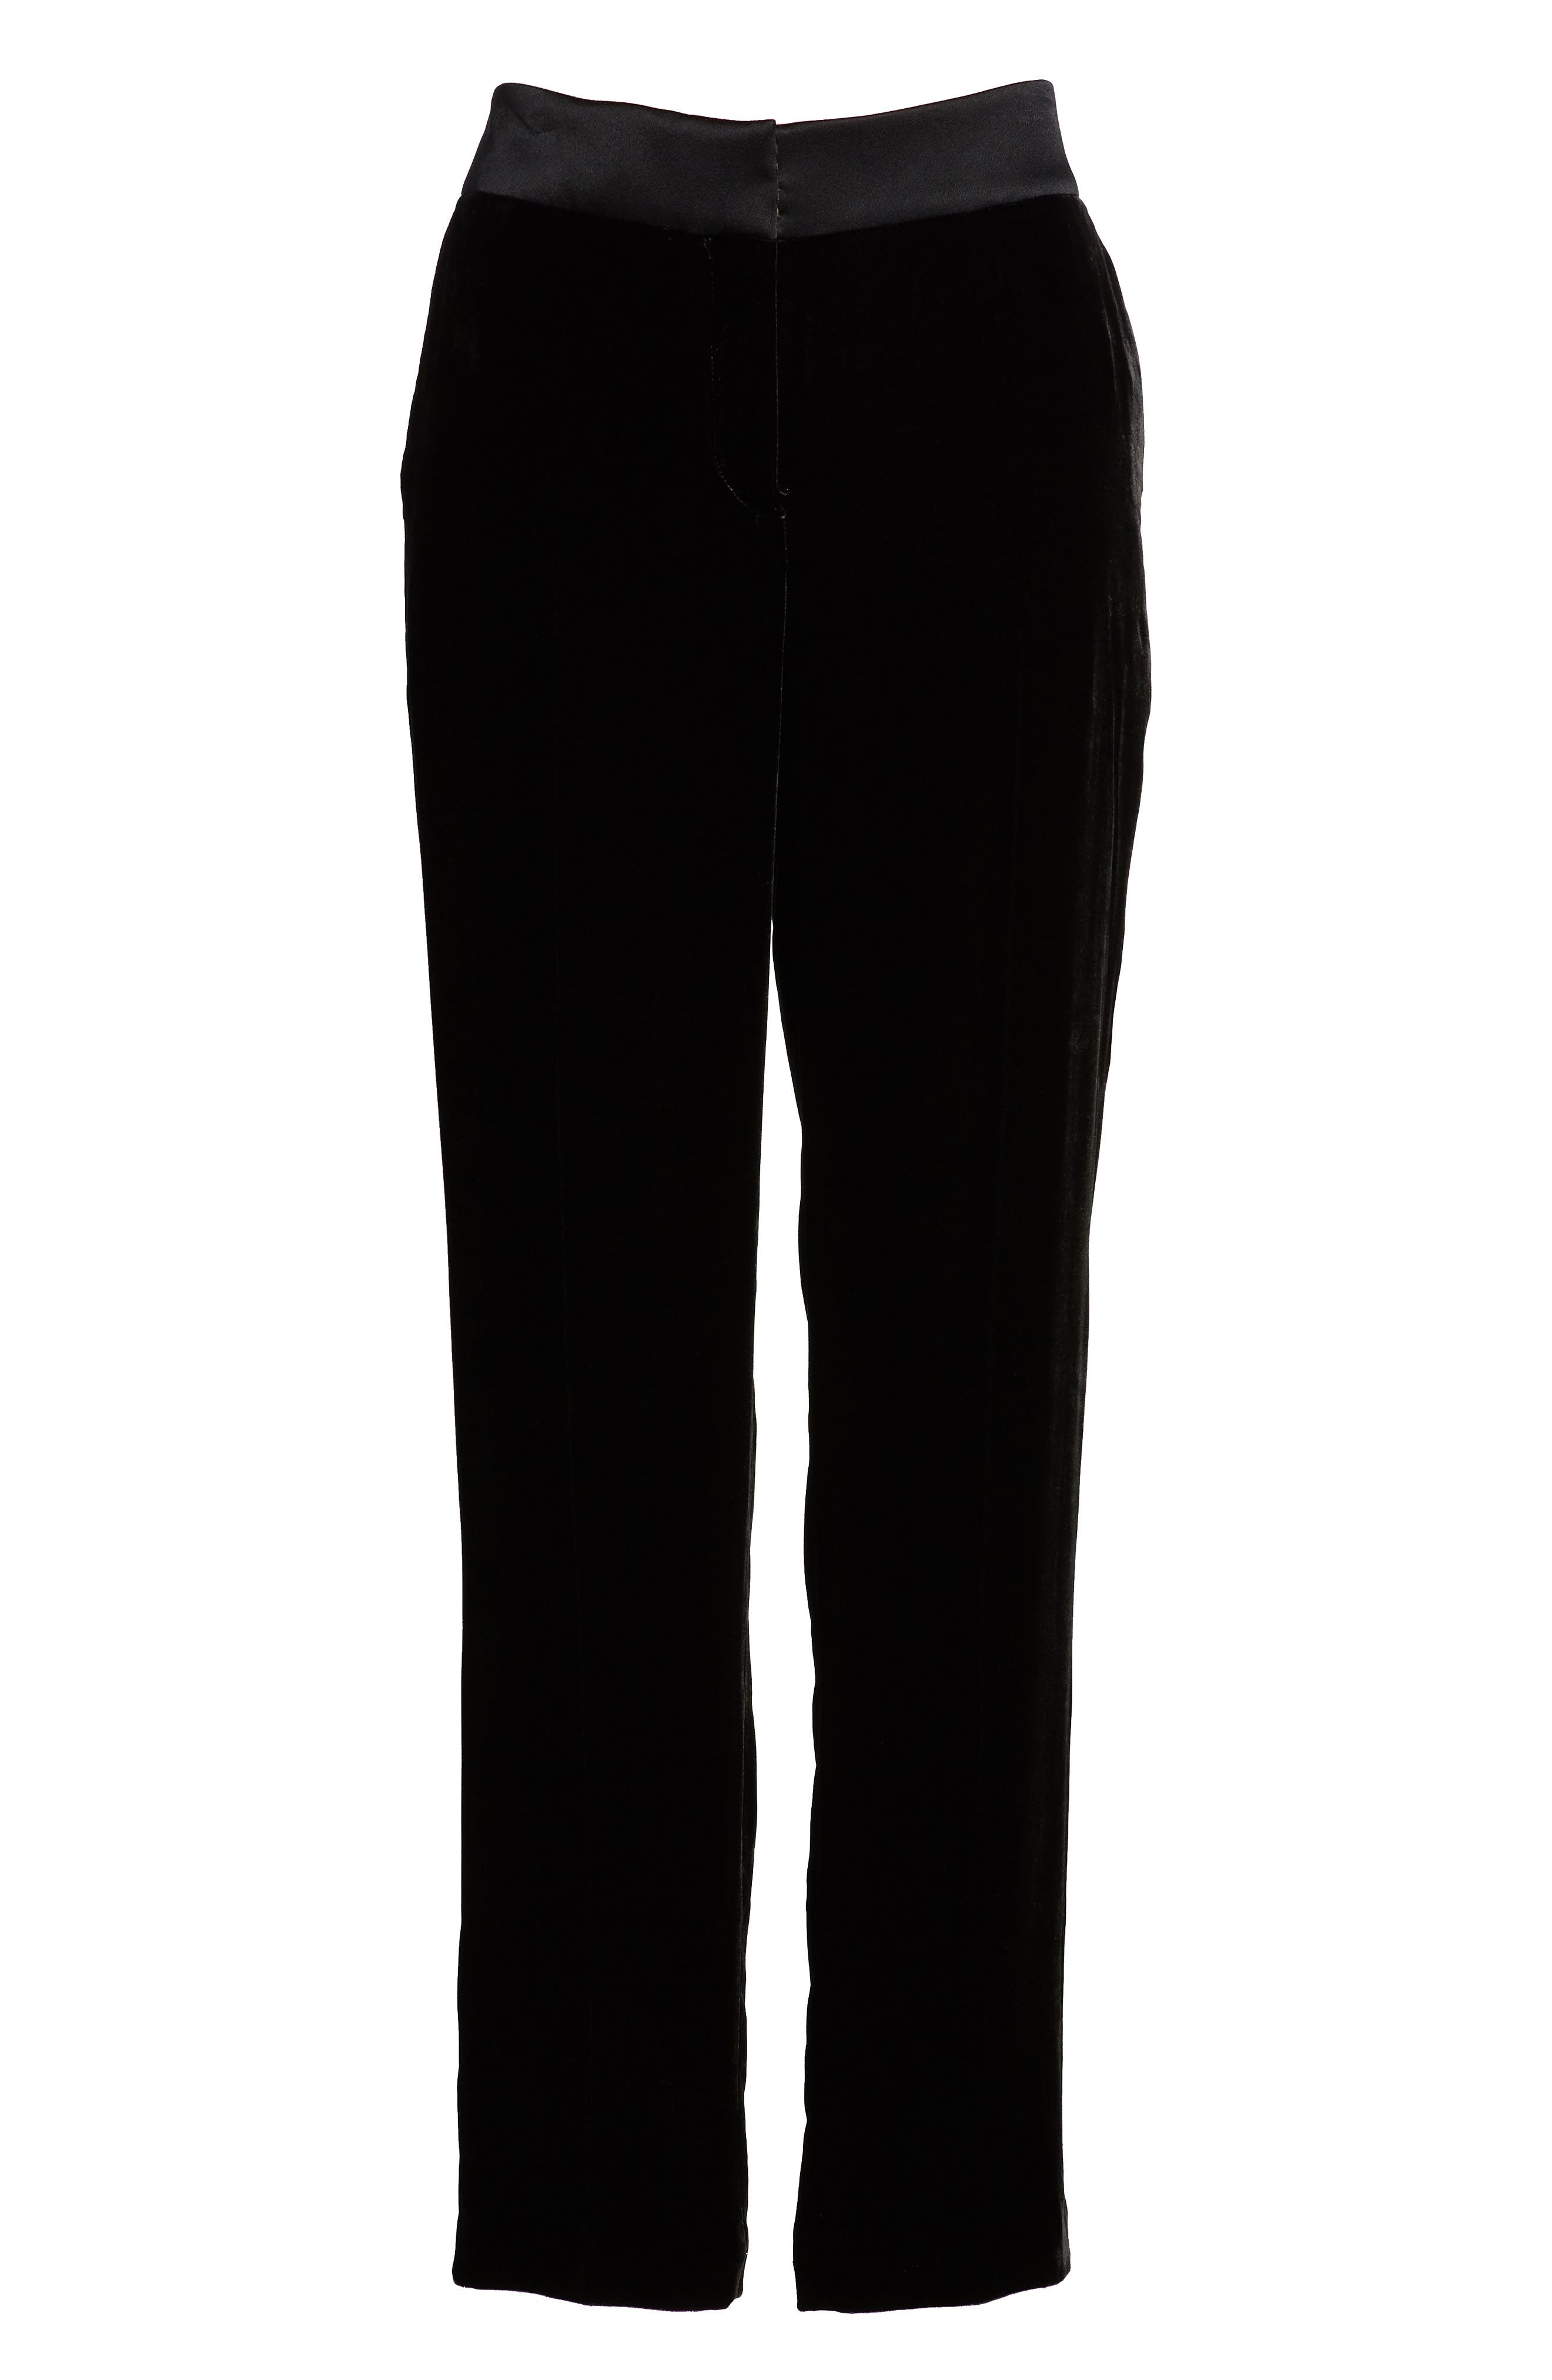 Tolesa Straight Leg Velvet Pants,                             Alternate thumbnail 6, color,                             001